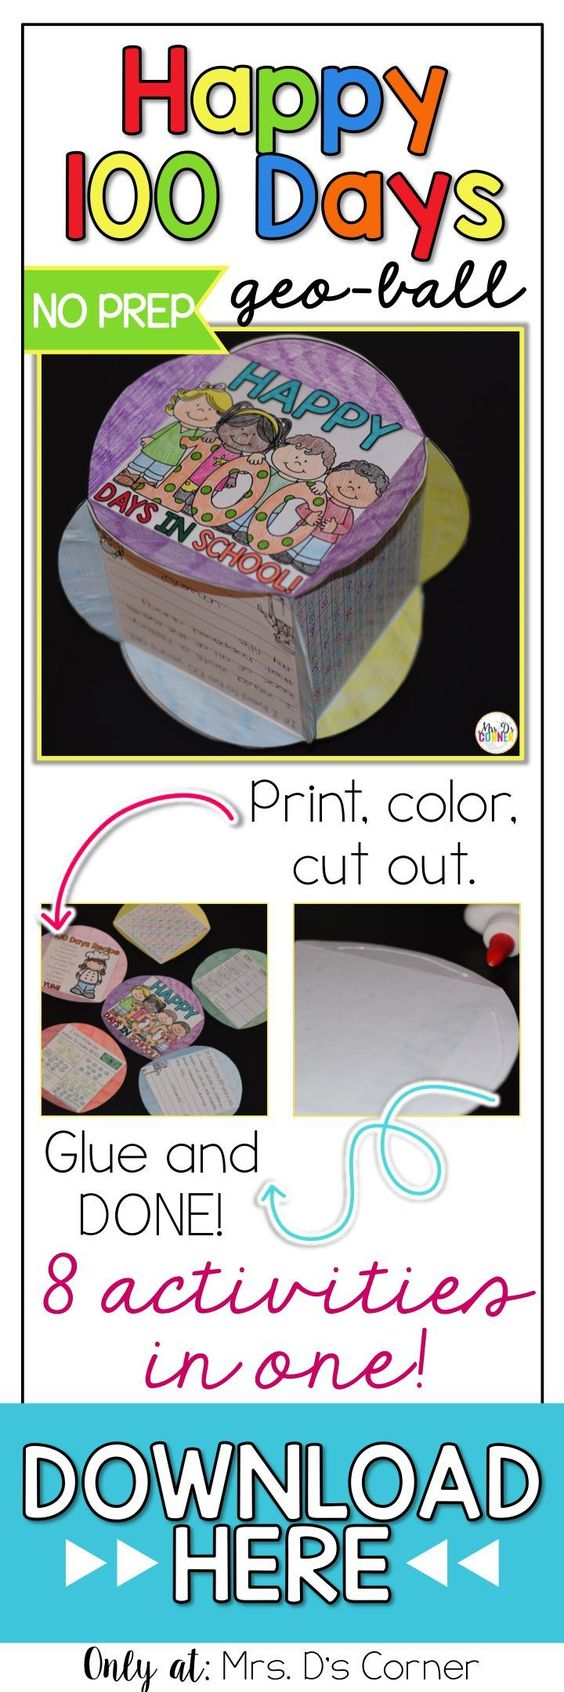 This NO PREP activity geo-ball includes 9 different activity pages to cut out and glue together to create 1 geo-ball. Choose the pages for your students or let them choose their own activities. Print, color, cut, glue, and done! 100th Day of School no pre